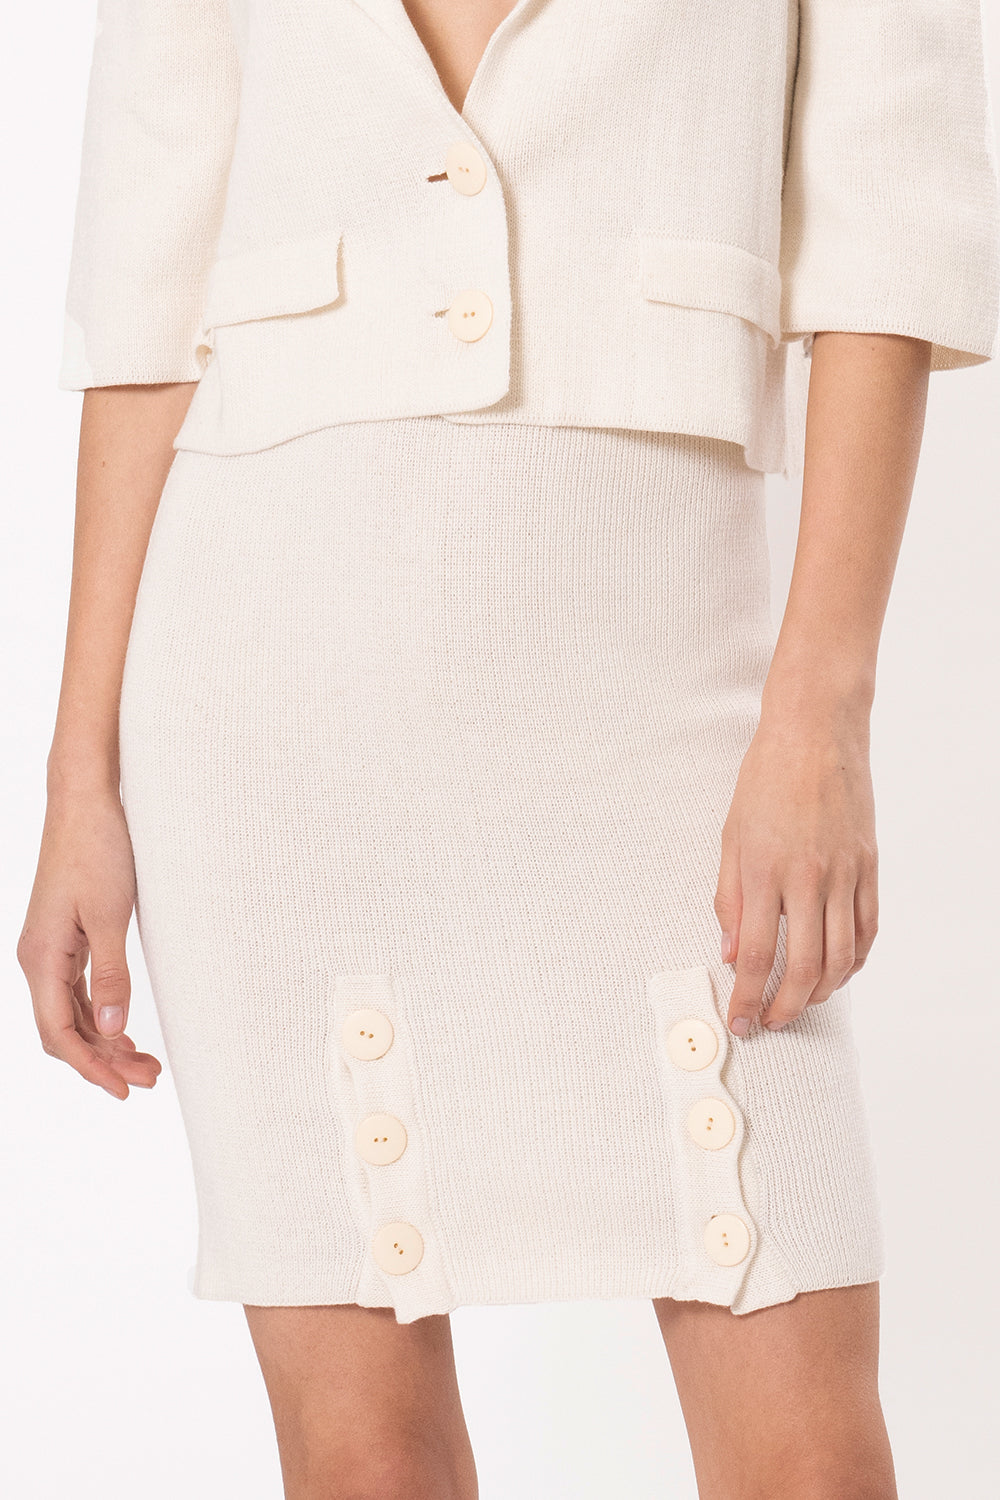 Rosaura Skirt in Ivory